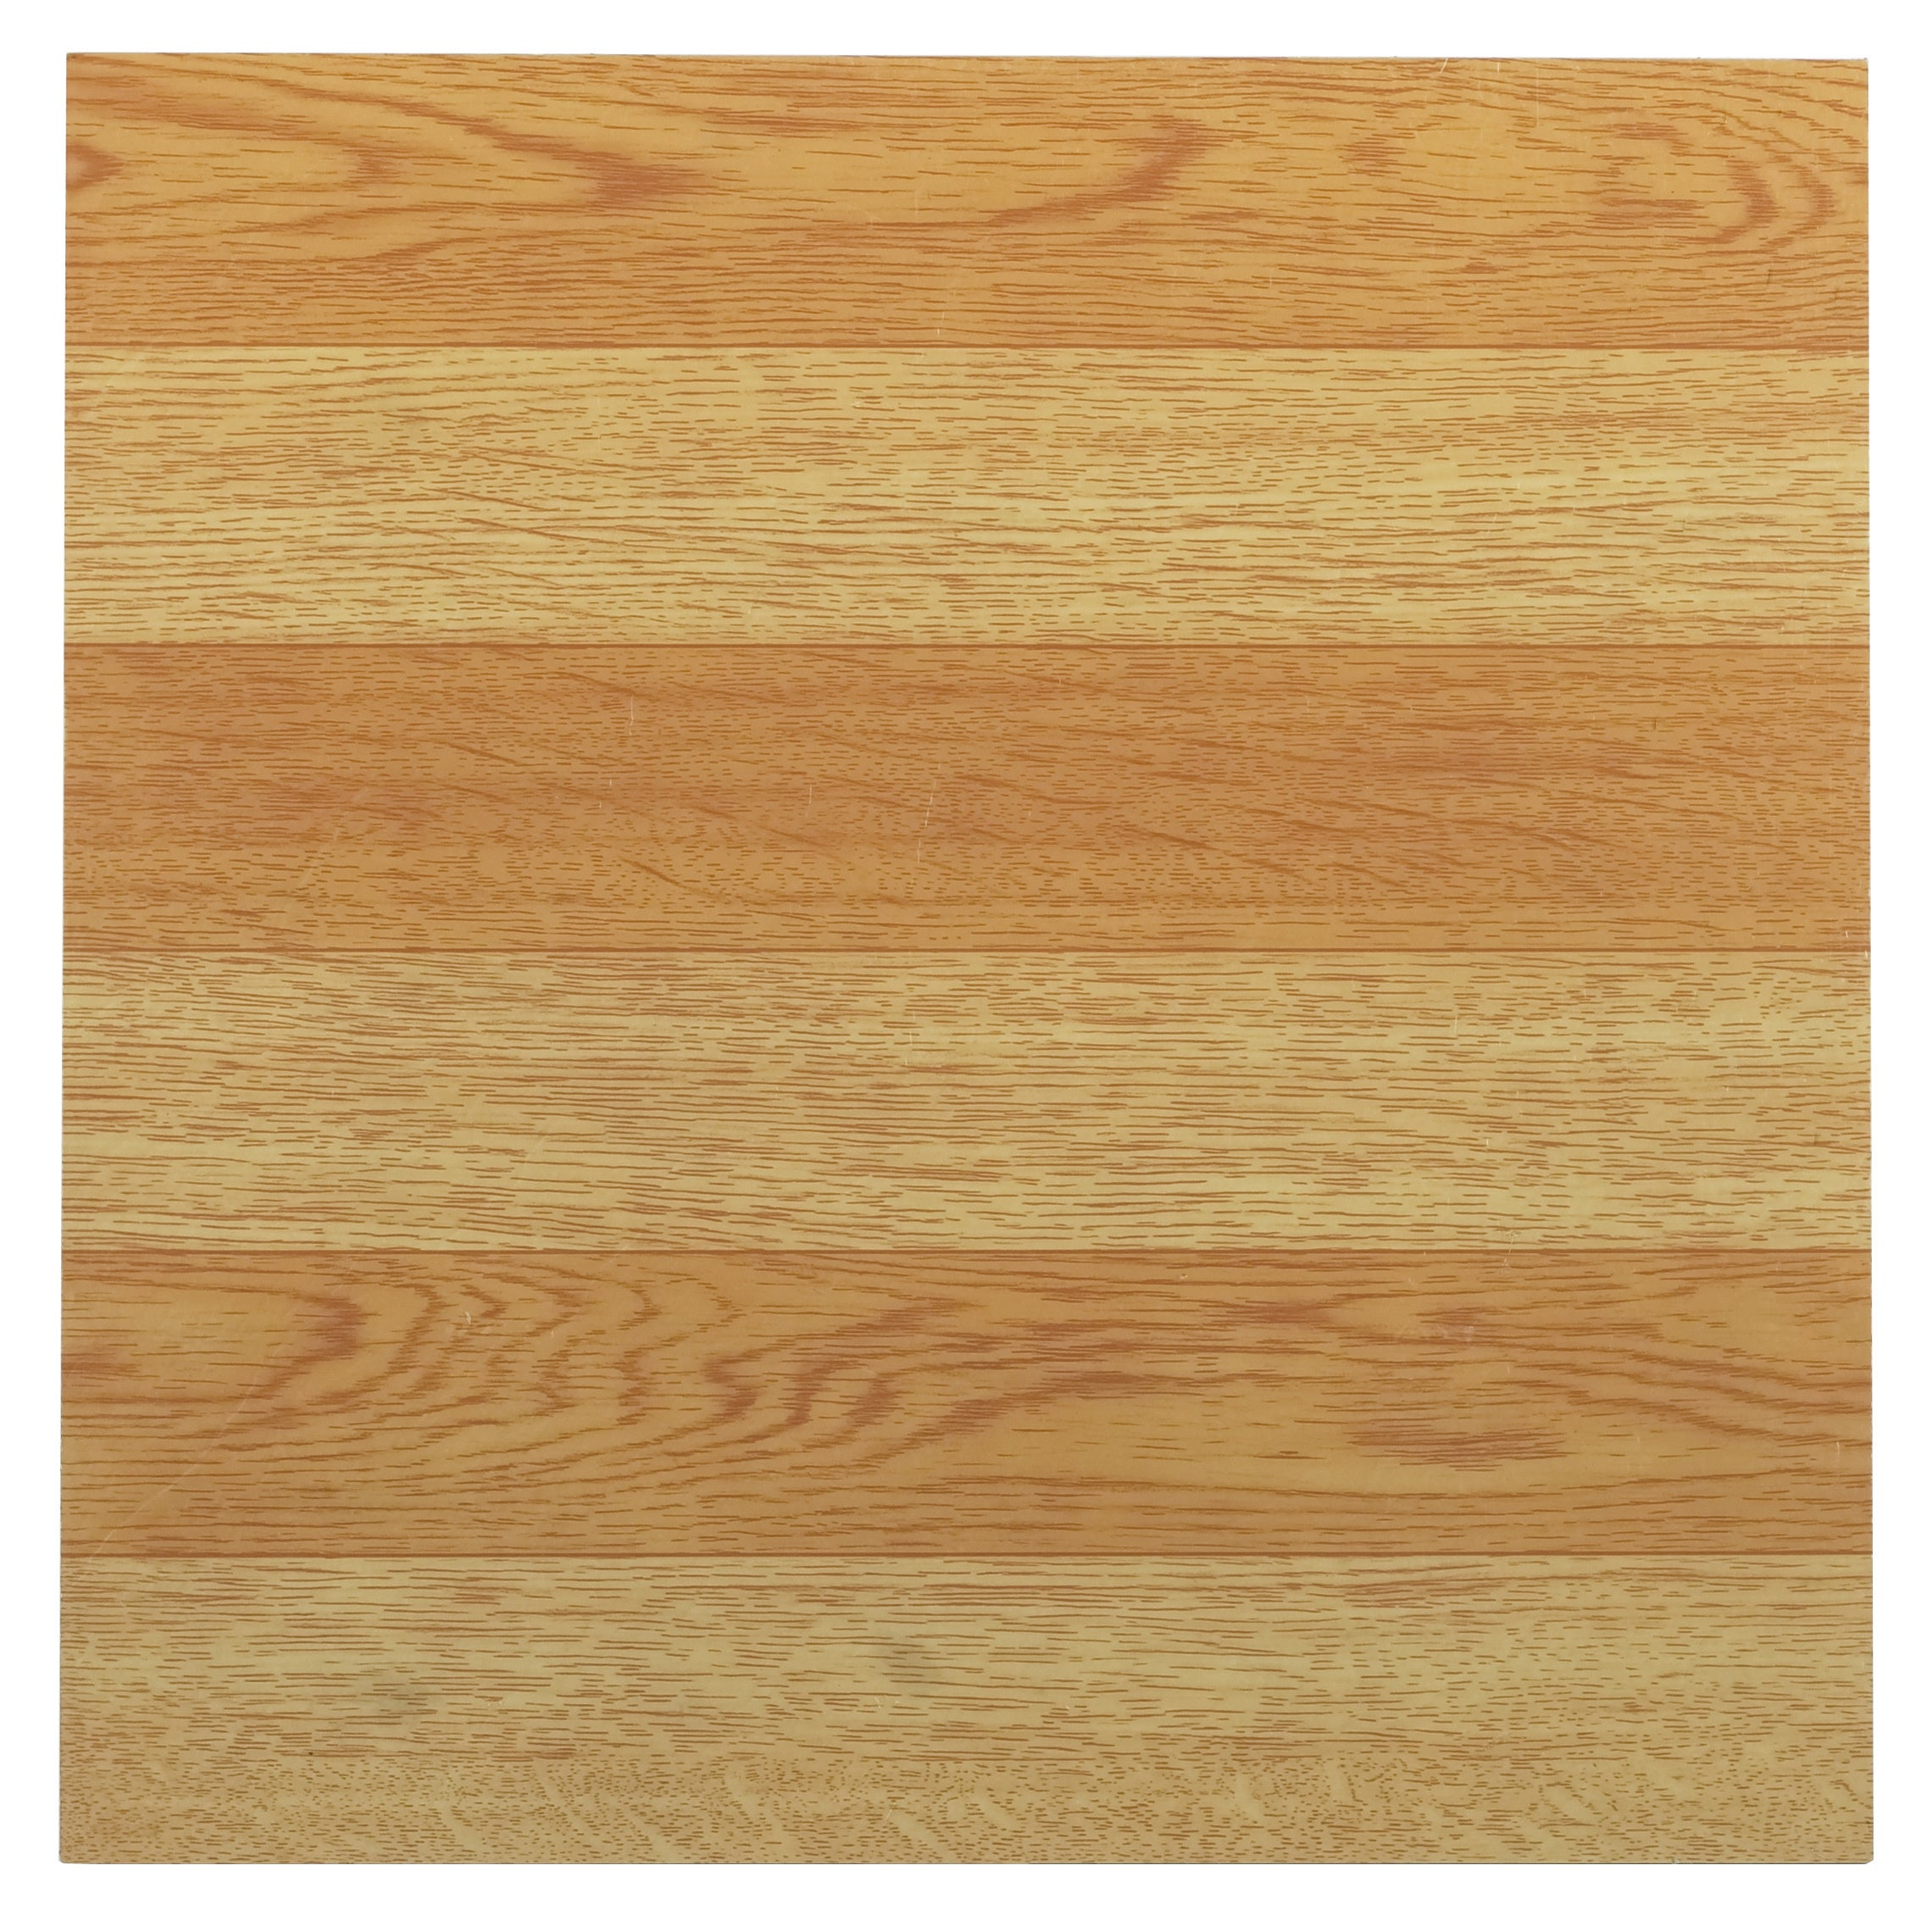 Achim tivoli light oak plank look 12x12 self adhesive vinyl floor achim tivoli light oak plank look 12x12 self adhesive vinyl floor tile 45 tiles45 sq ft free shipping on orders over 45 overstock 17811548 dailygadgetfo Image collections